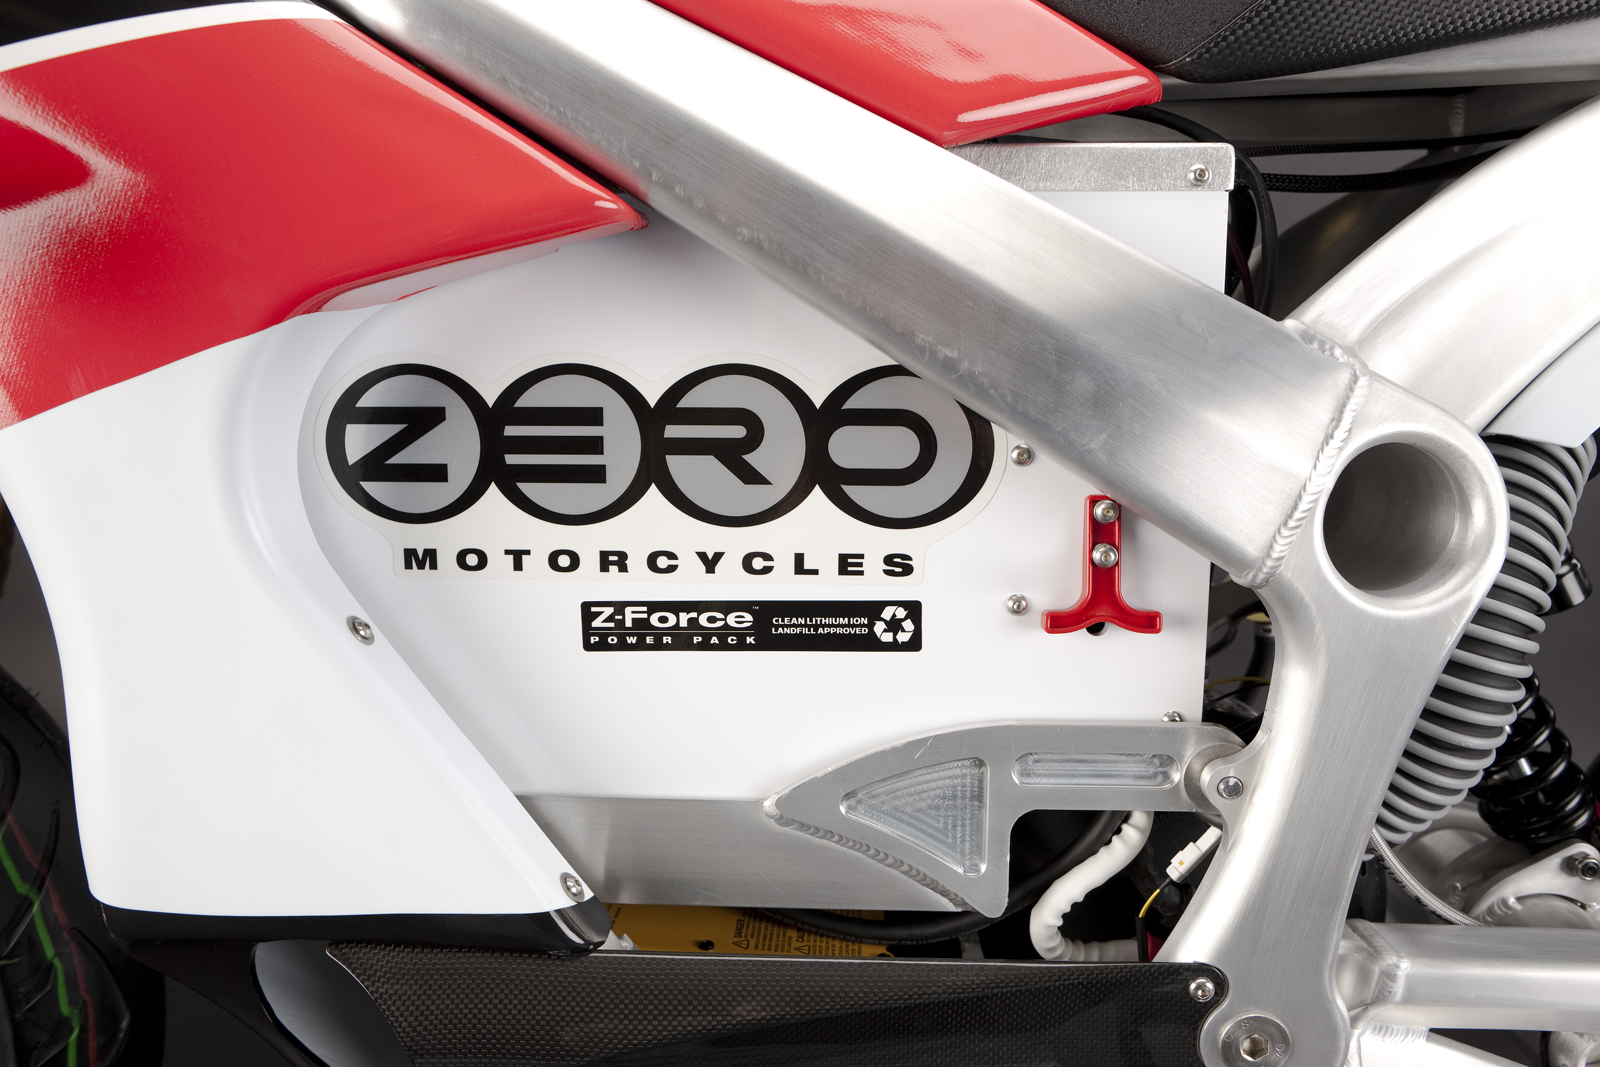 2010 Zero S Electric Motorcycle: Battery